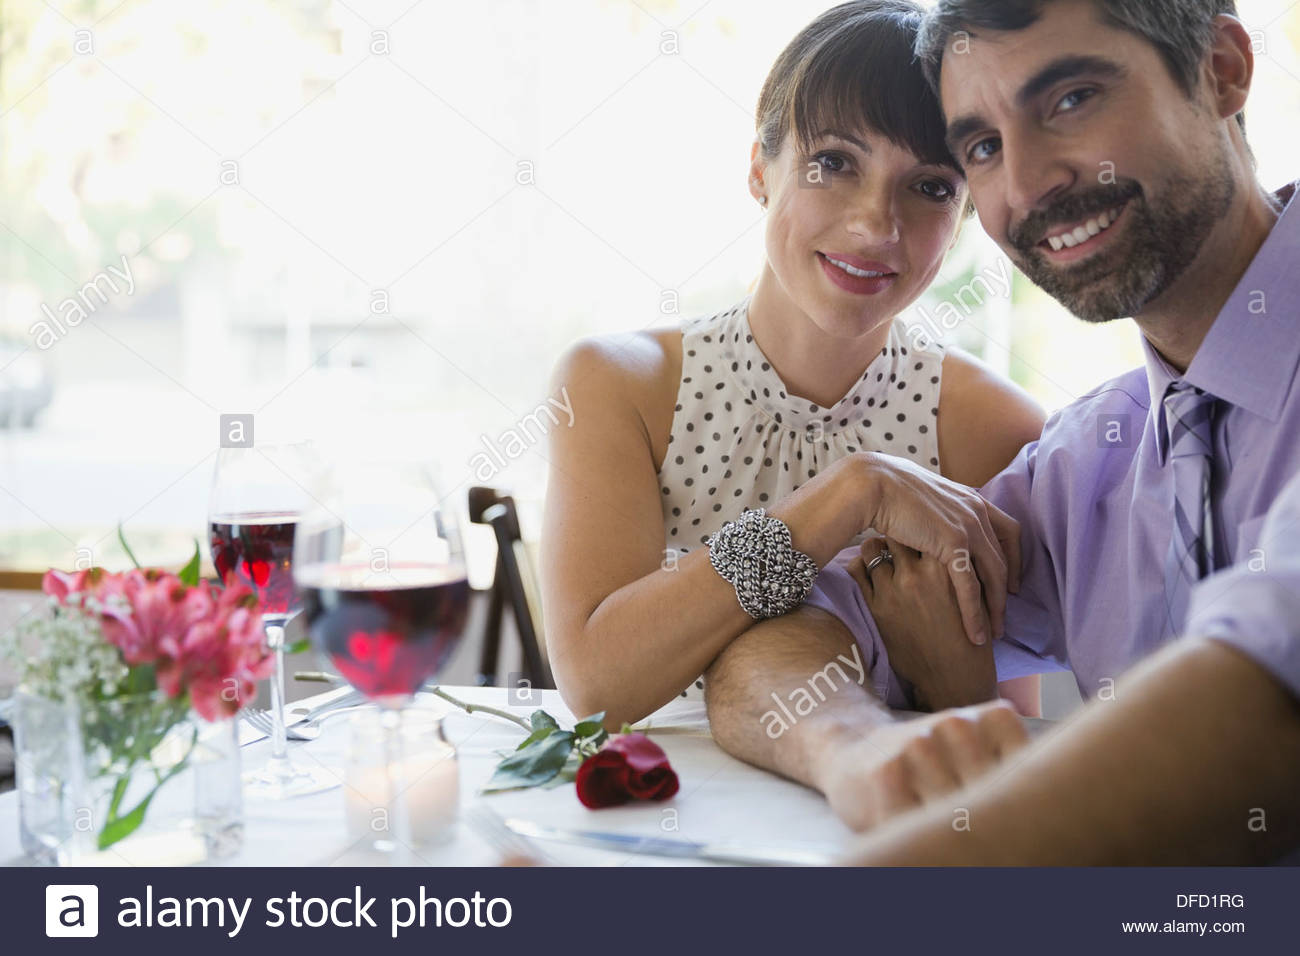 Portrait of smiling couple sitting in restaurant Photo Stock